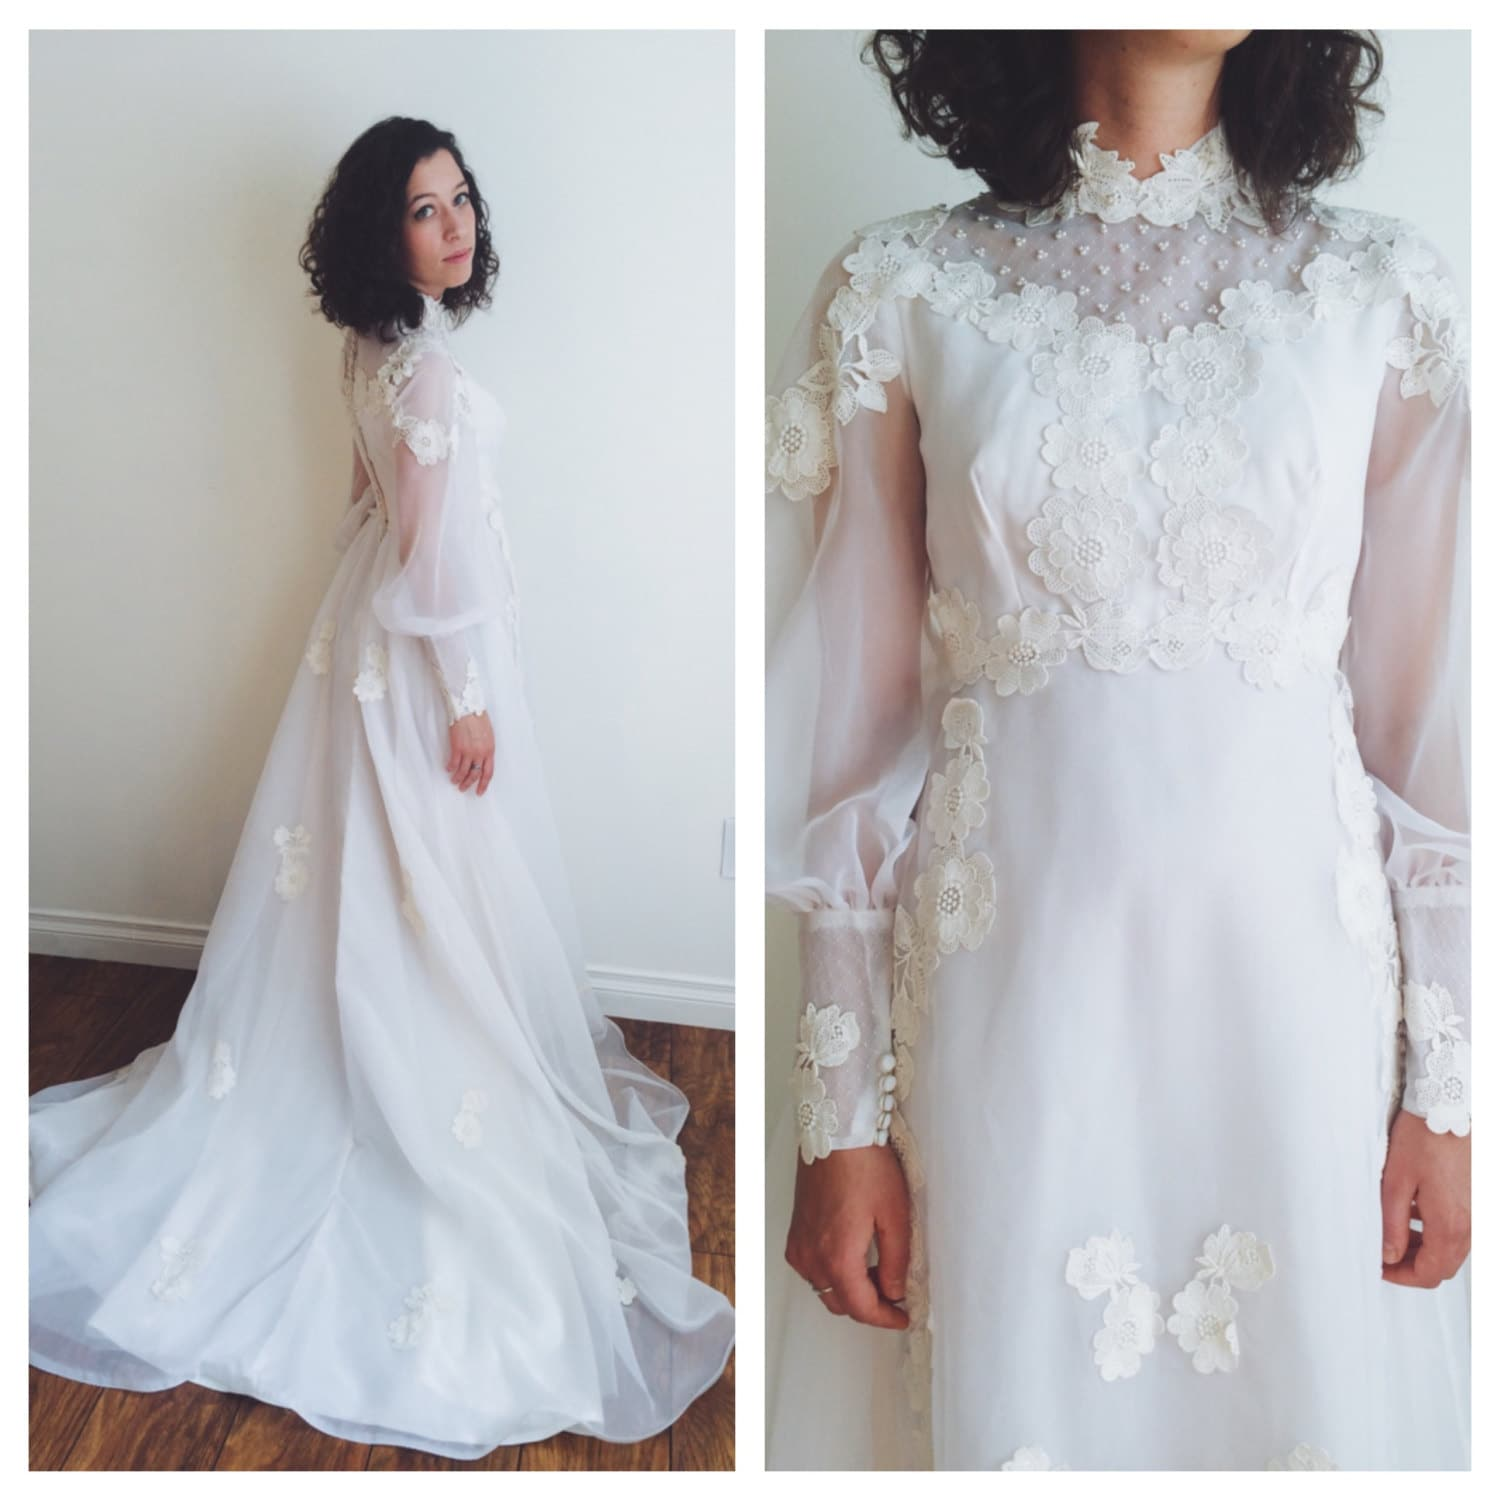 1960s Vintage Wedding Dress With Applique Flowers Size